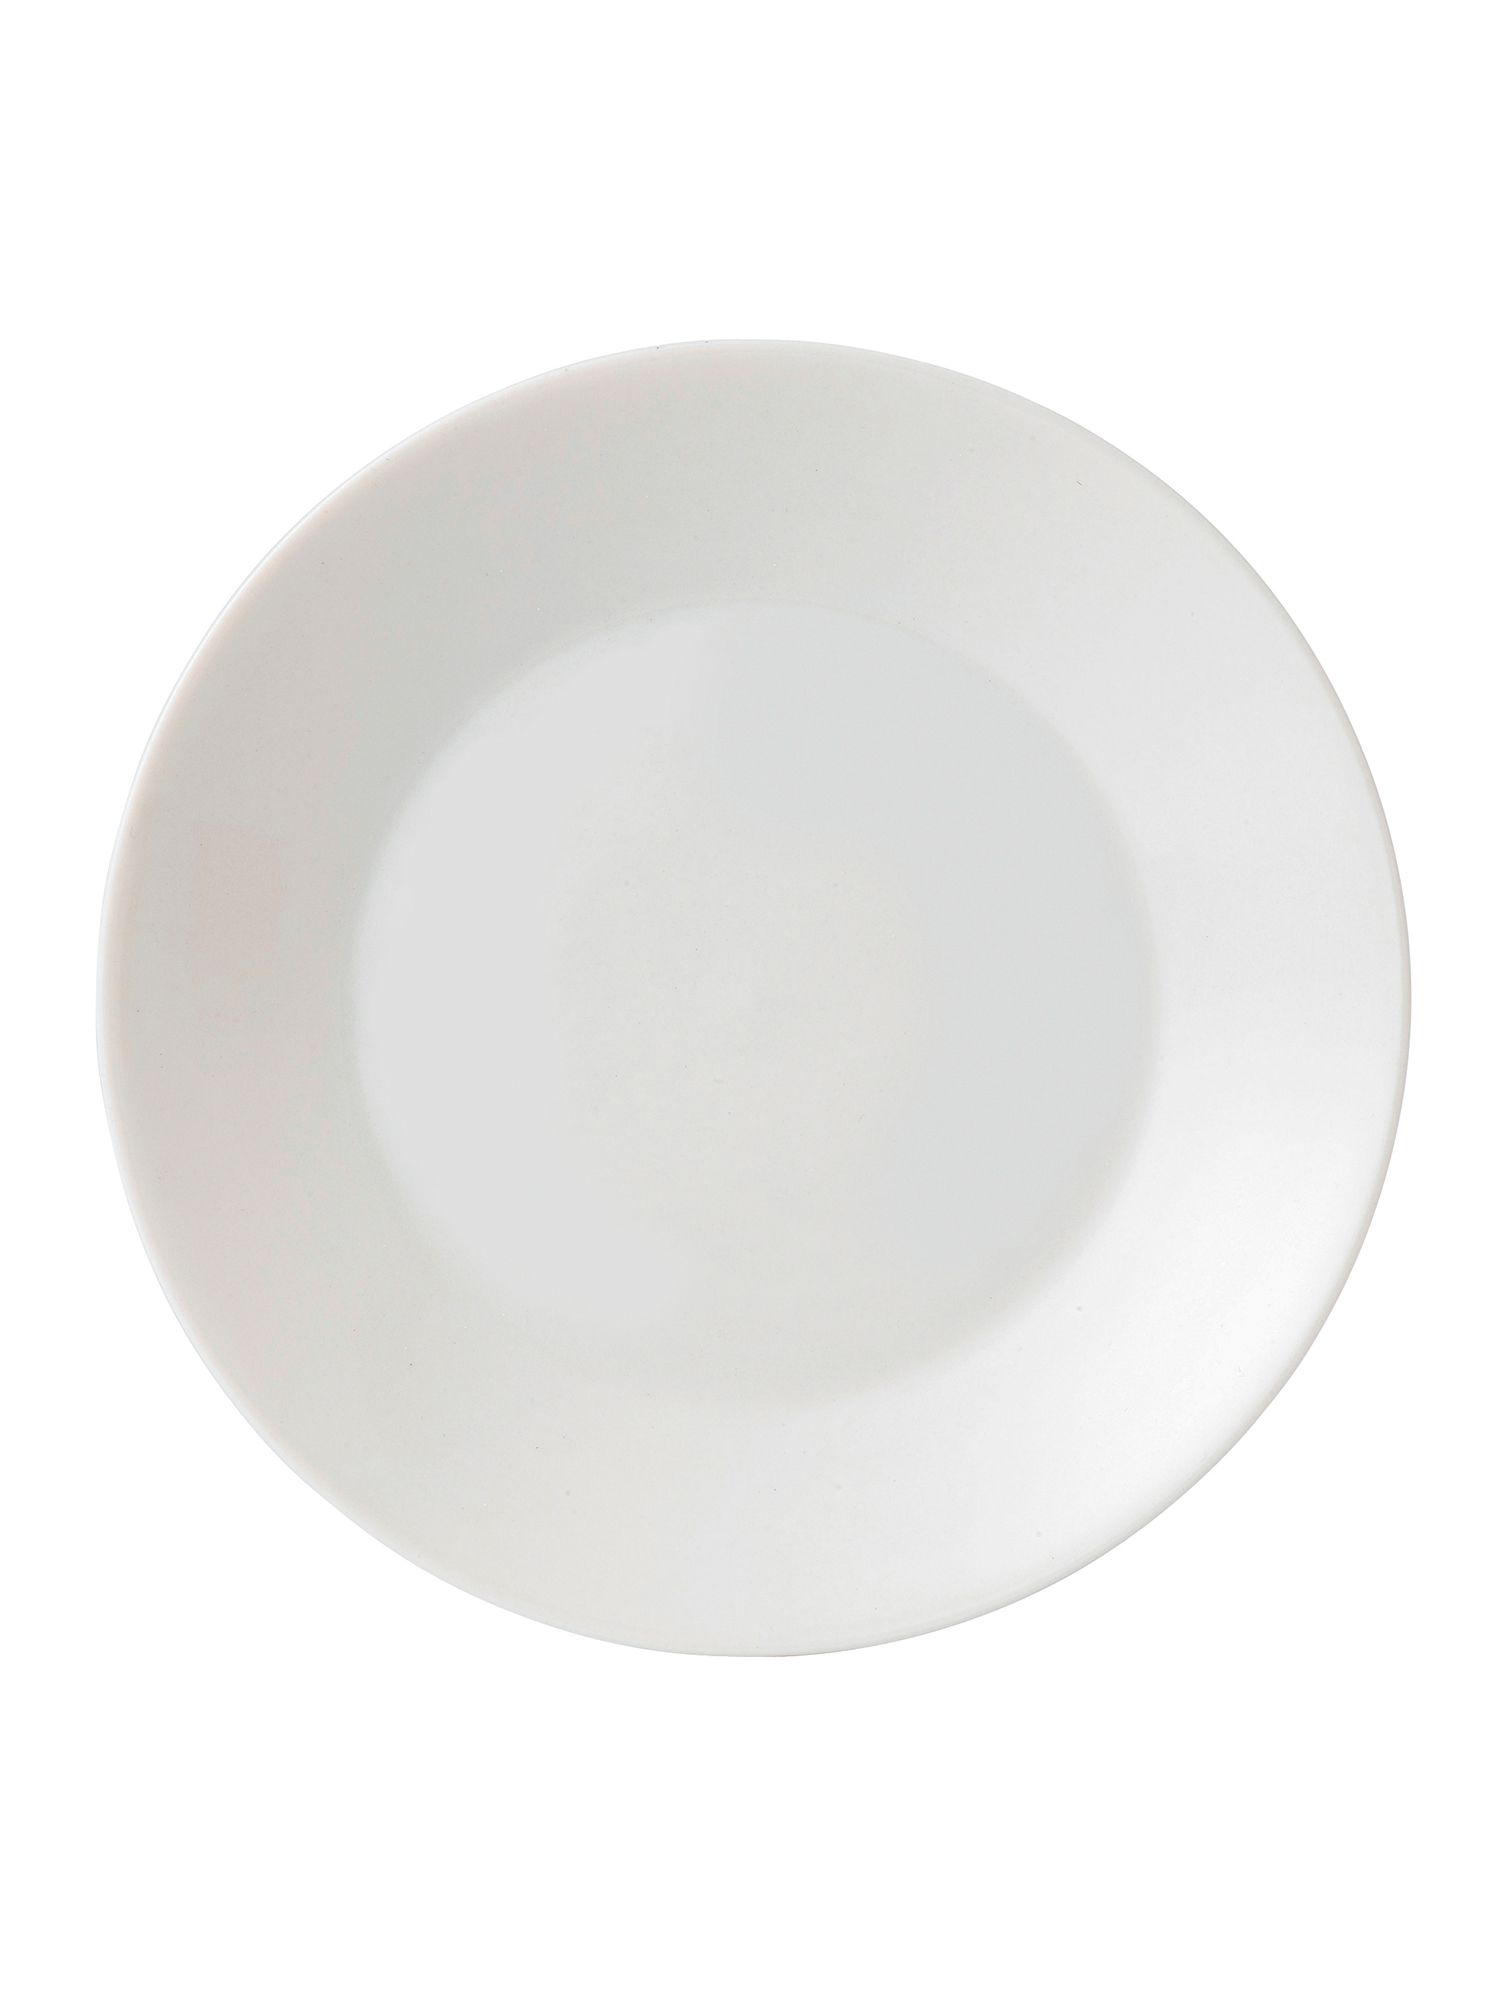 Fable white dinnerware range